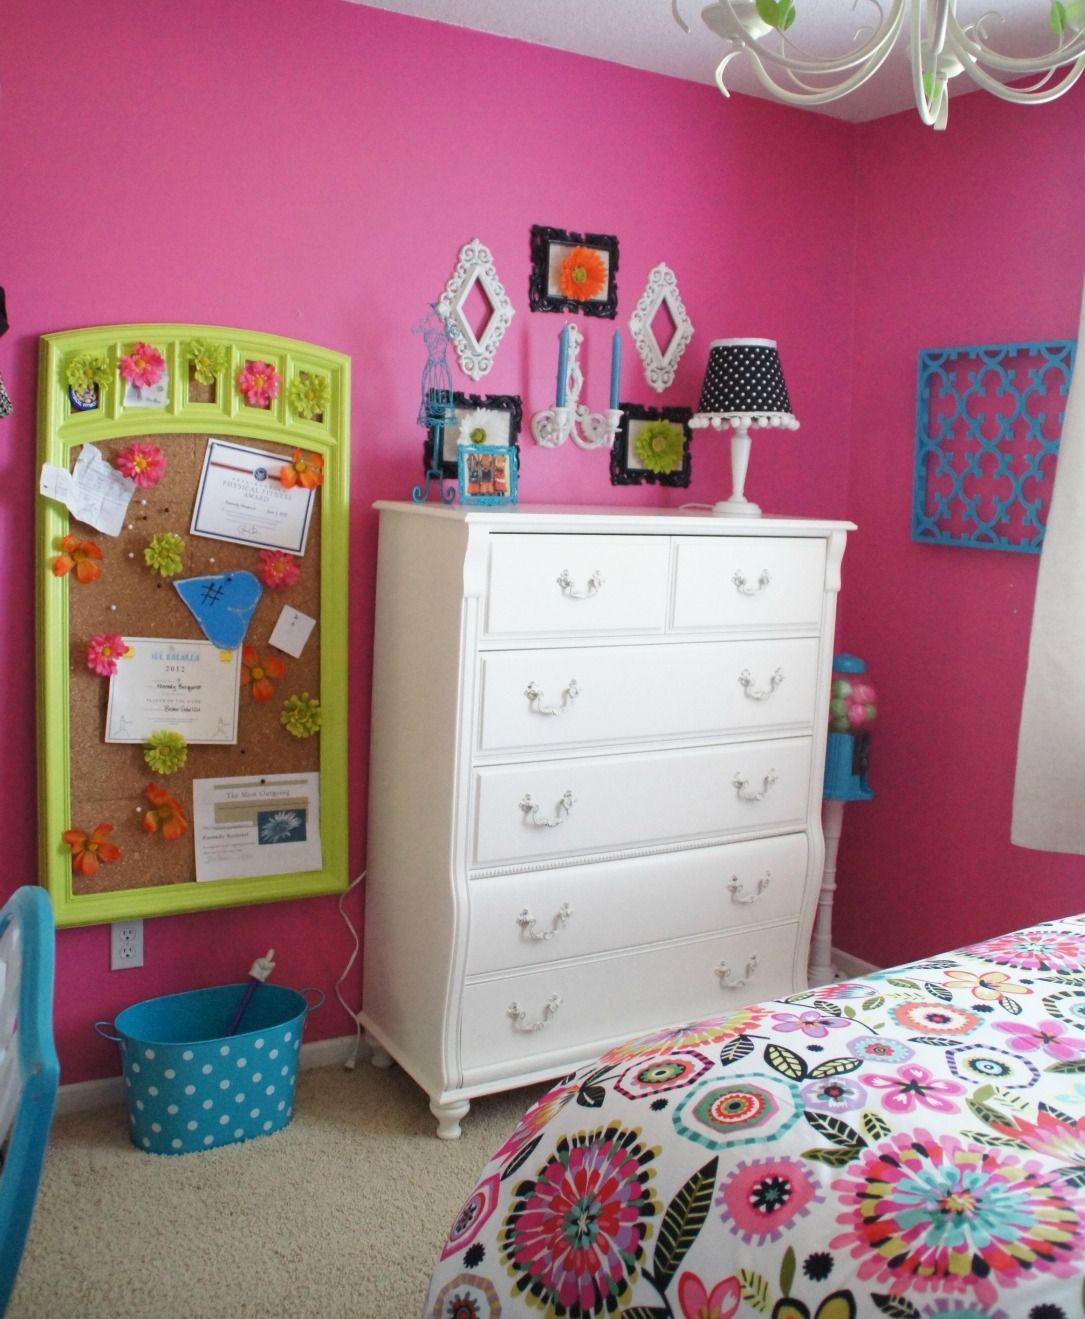 White Bedroom For Girl Adorable Tween Bedroom Design Idea For Girls With Fuchsia